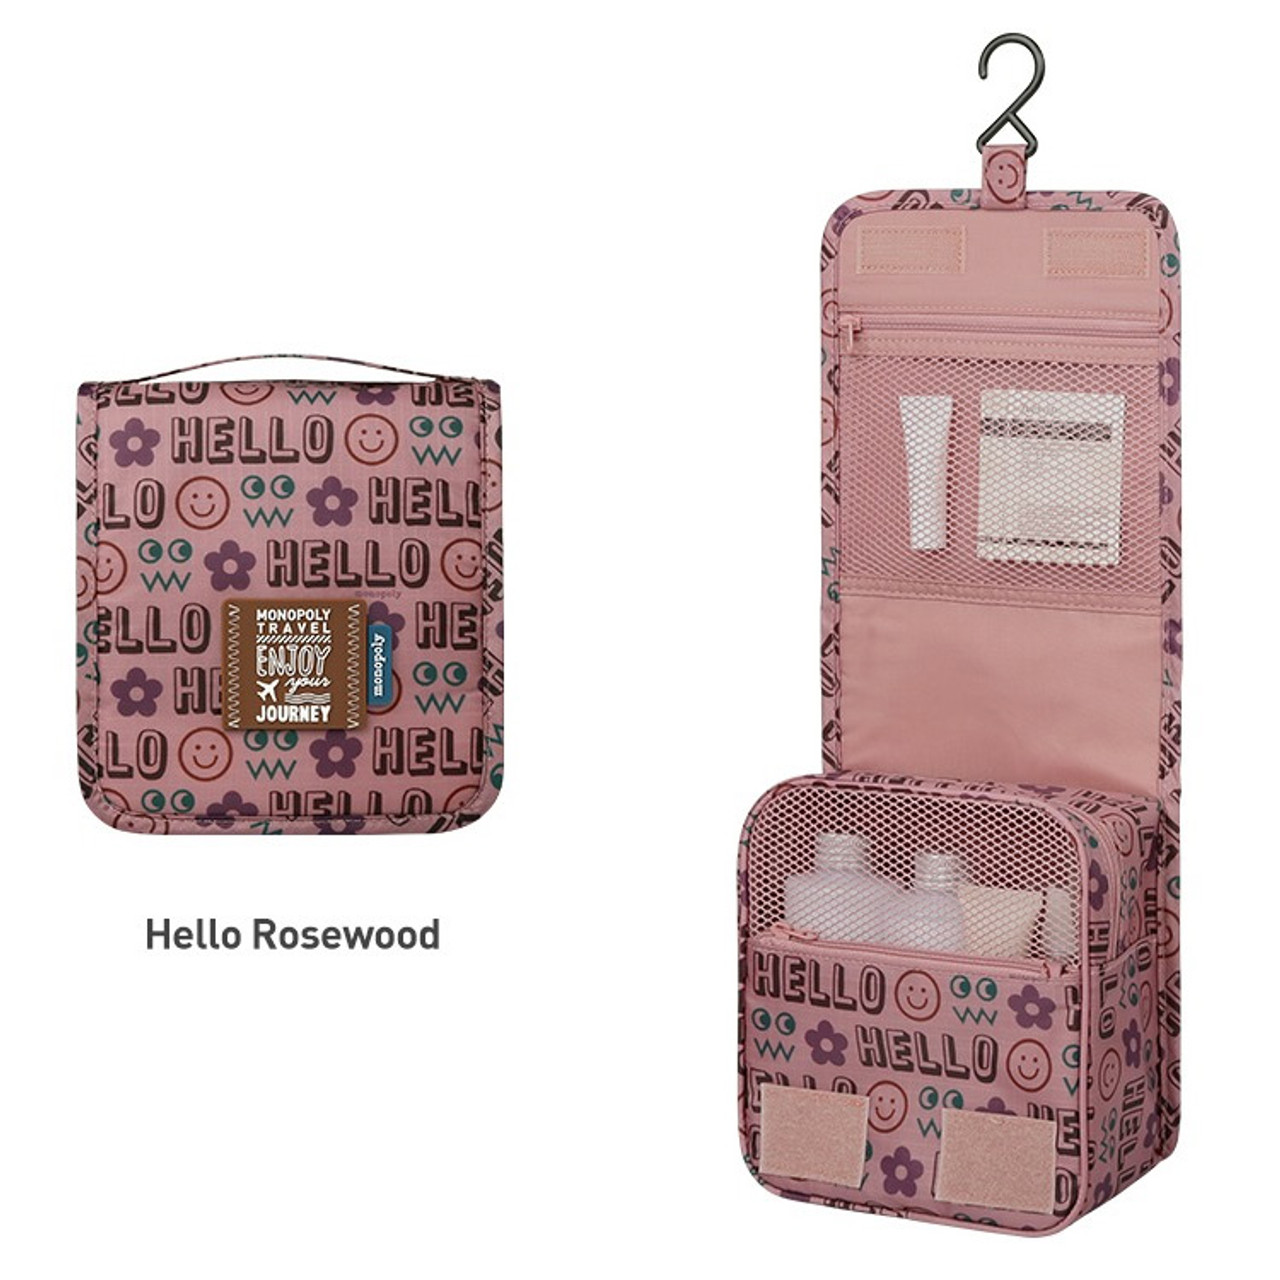 e103d38f9749 Hello rosewood - Monopoly Enjoy journey small travel hanging toiletry pouch  bag